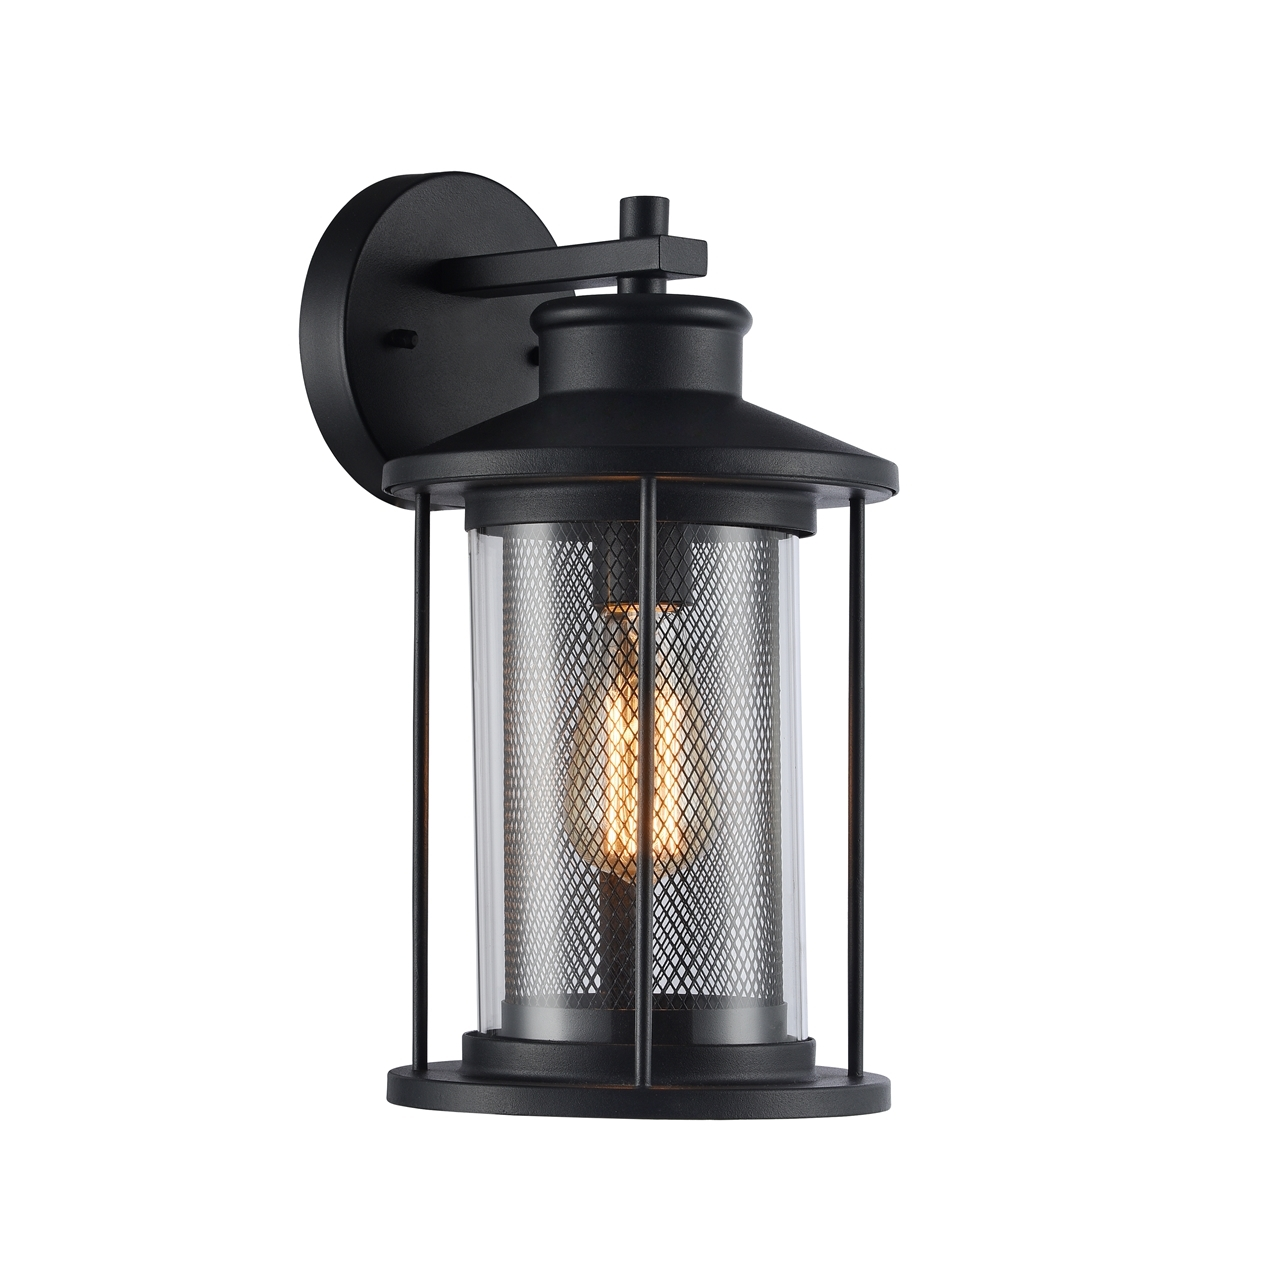 Posh Outdoor Wall Sconce Chloe Inc Chloe Lighting Crichton Transitional Black Outdoor Wall Sconce Light Sensor Outdoor Wall Sconce Light Fixture houzz-02 Outdoor Wall Sconce